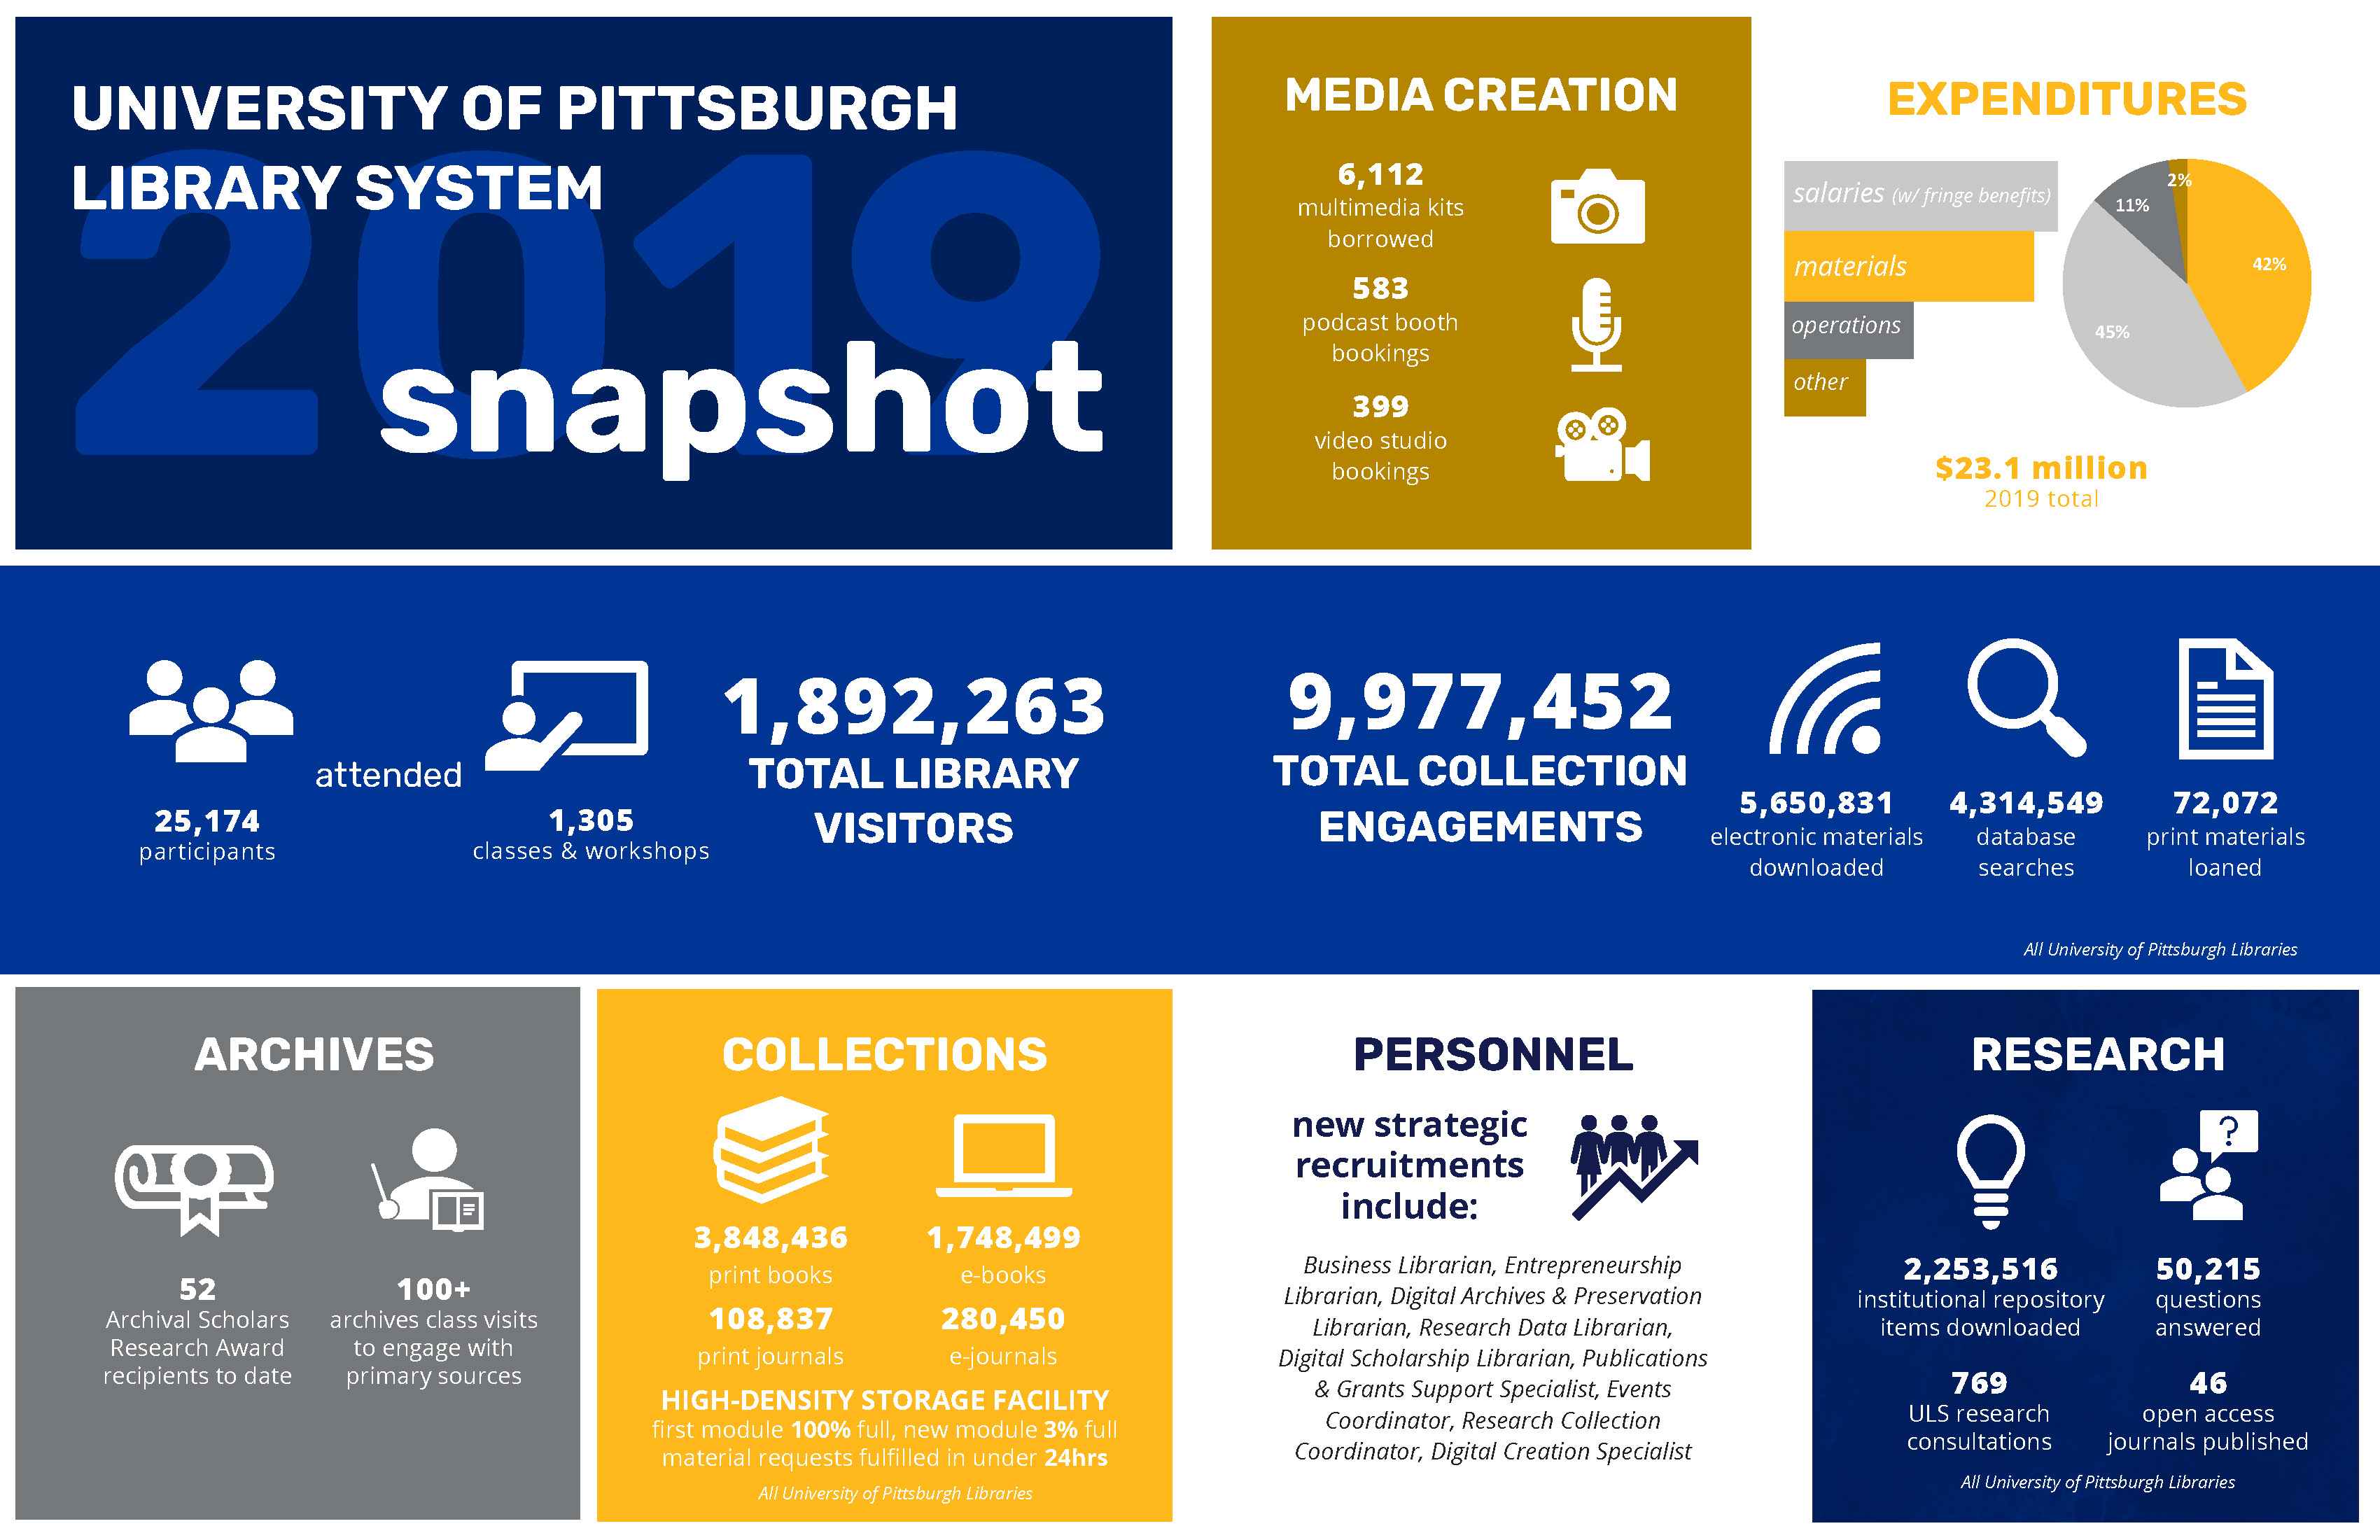 University of Pittsburgh Library System 2018 Statistics